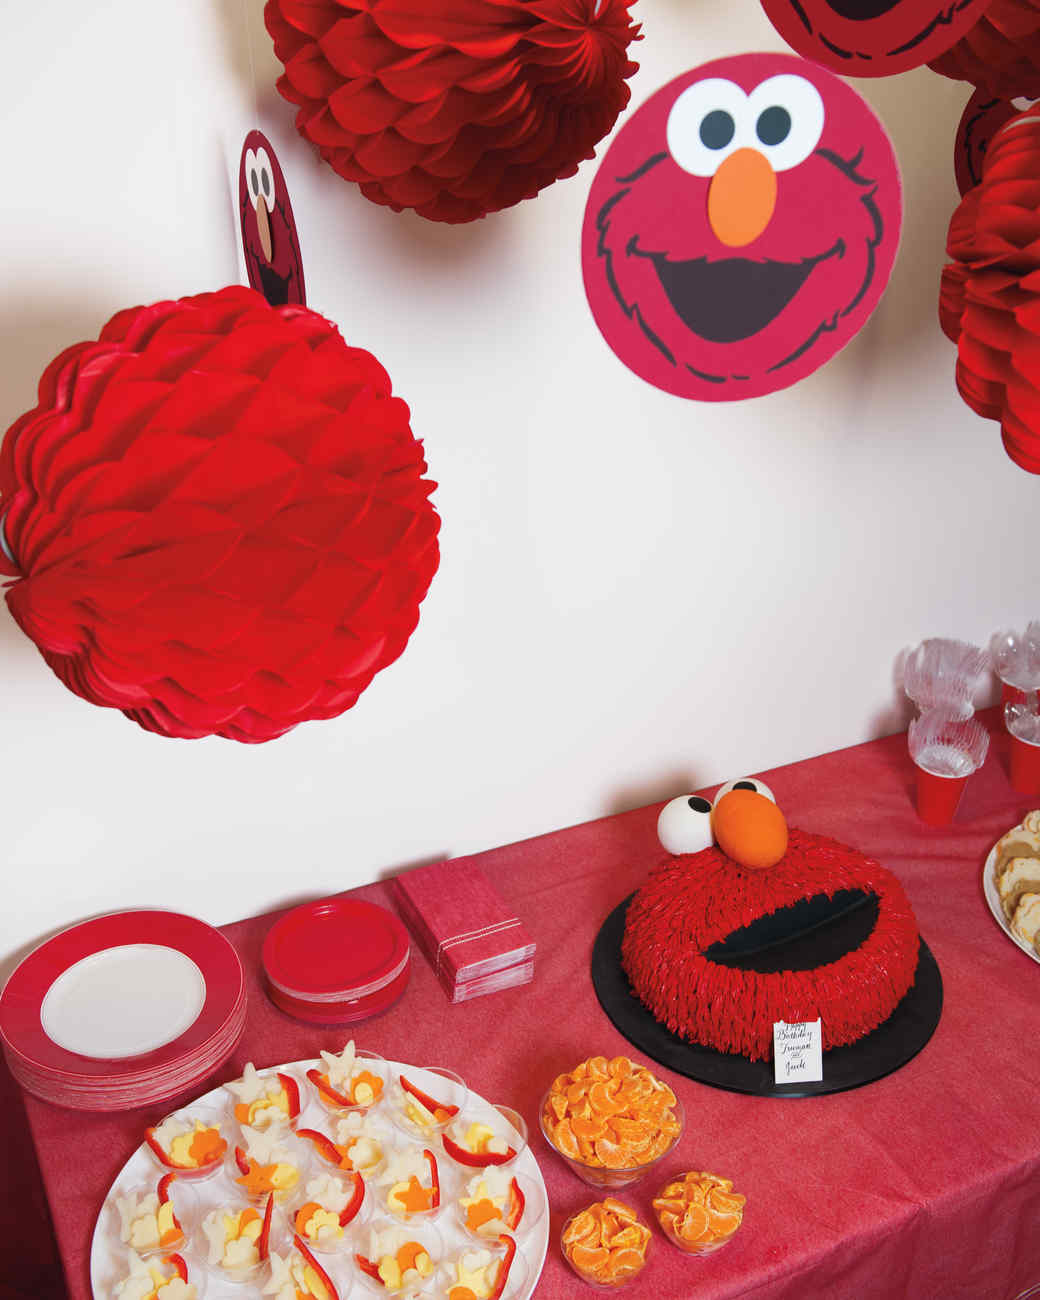 elmo6mrc9000-md110067.jpg